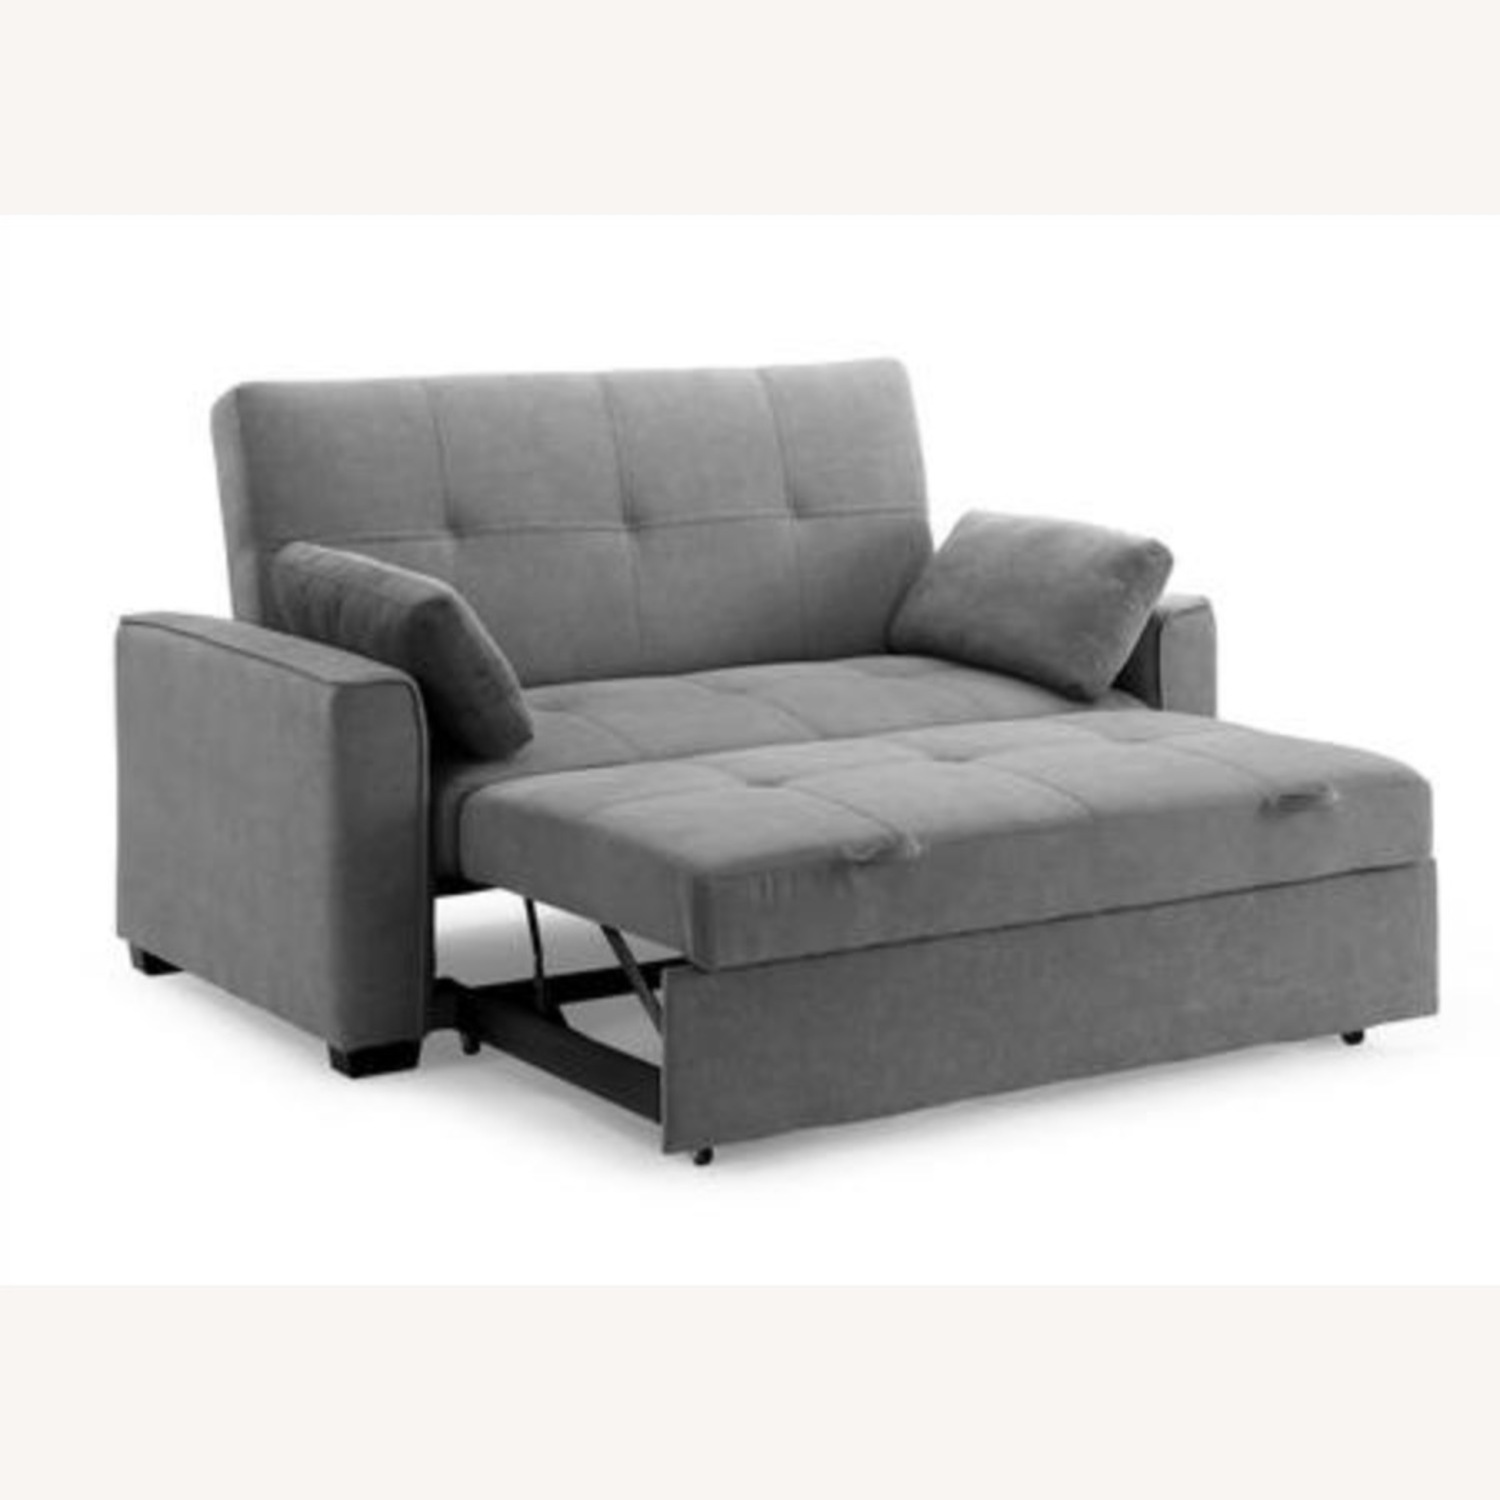 Light Grey Super Comfortable Sleeper Sofa - image-2